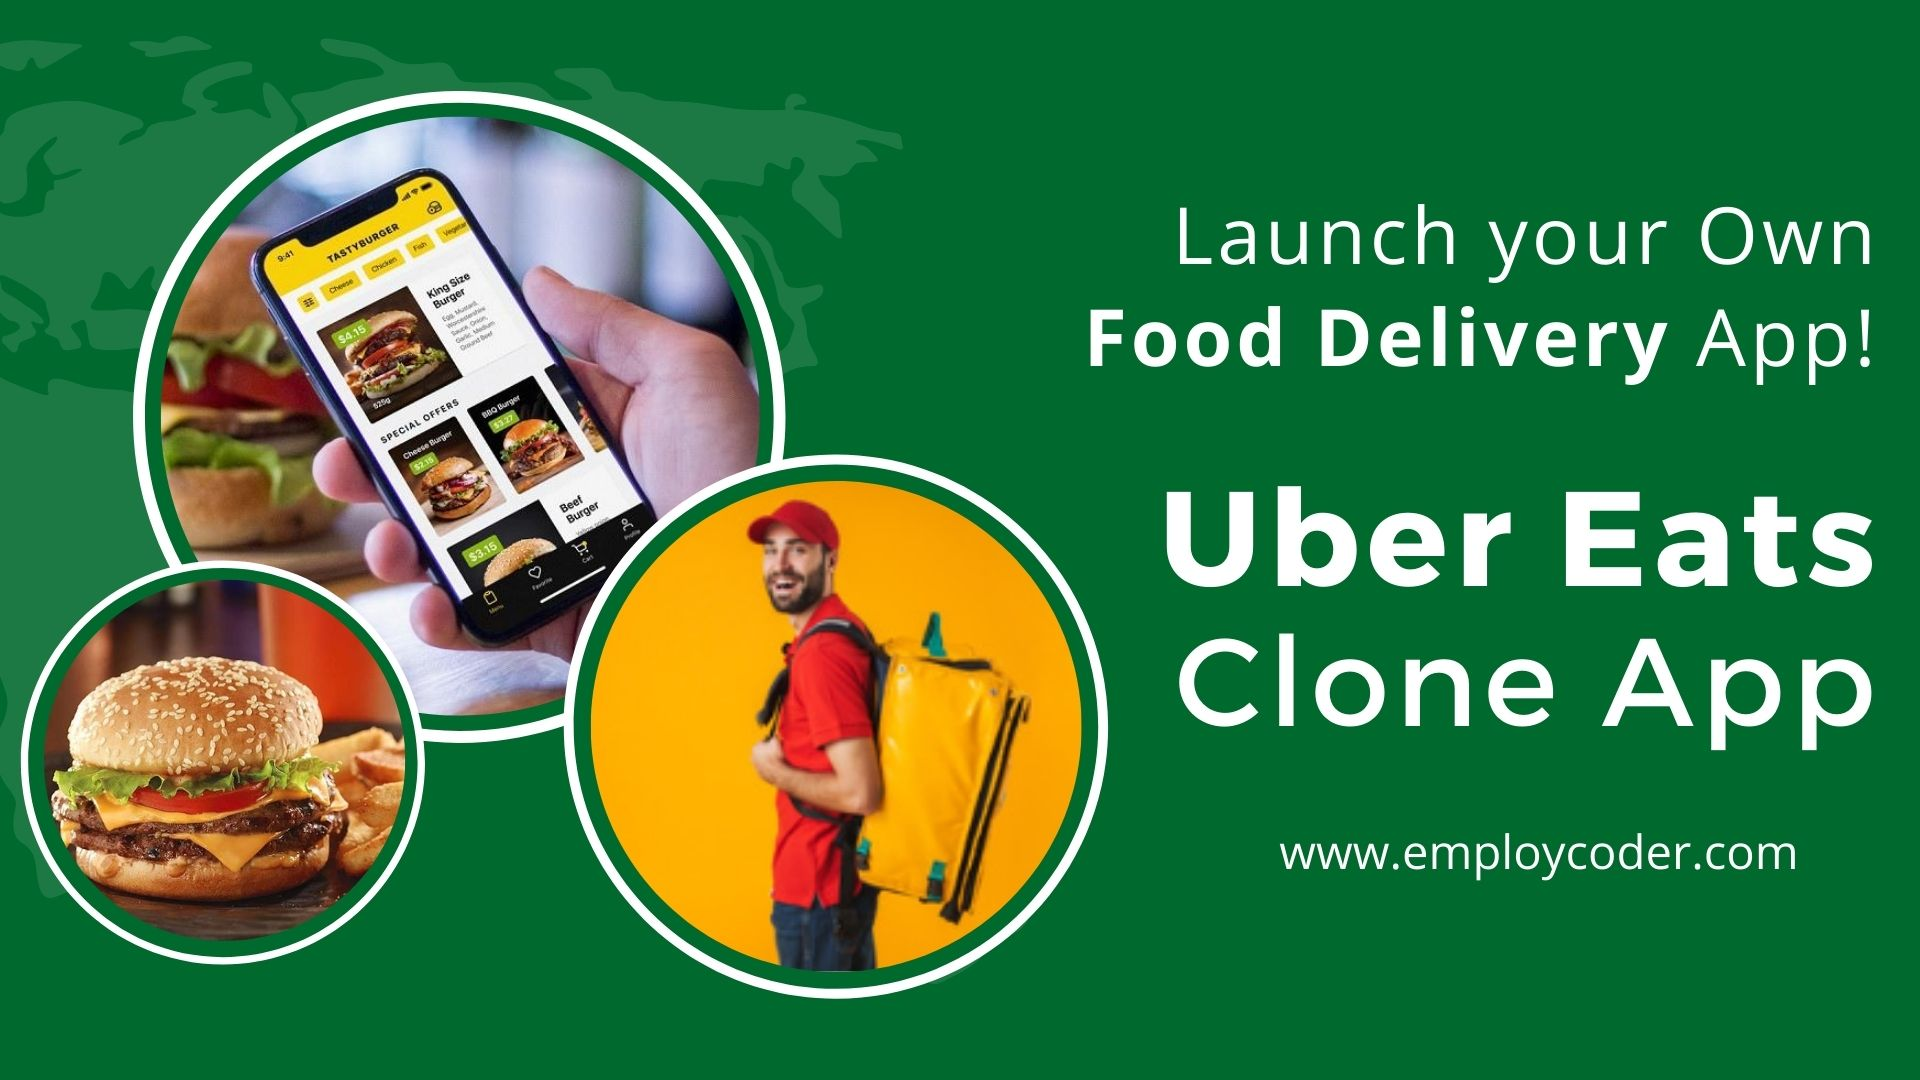 Launch Your Own Food Delivery App - UberEats Clone